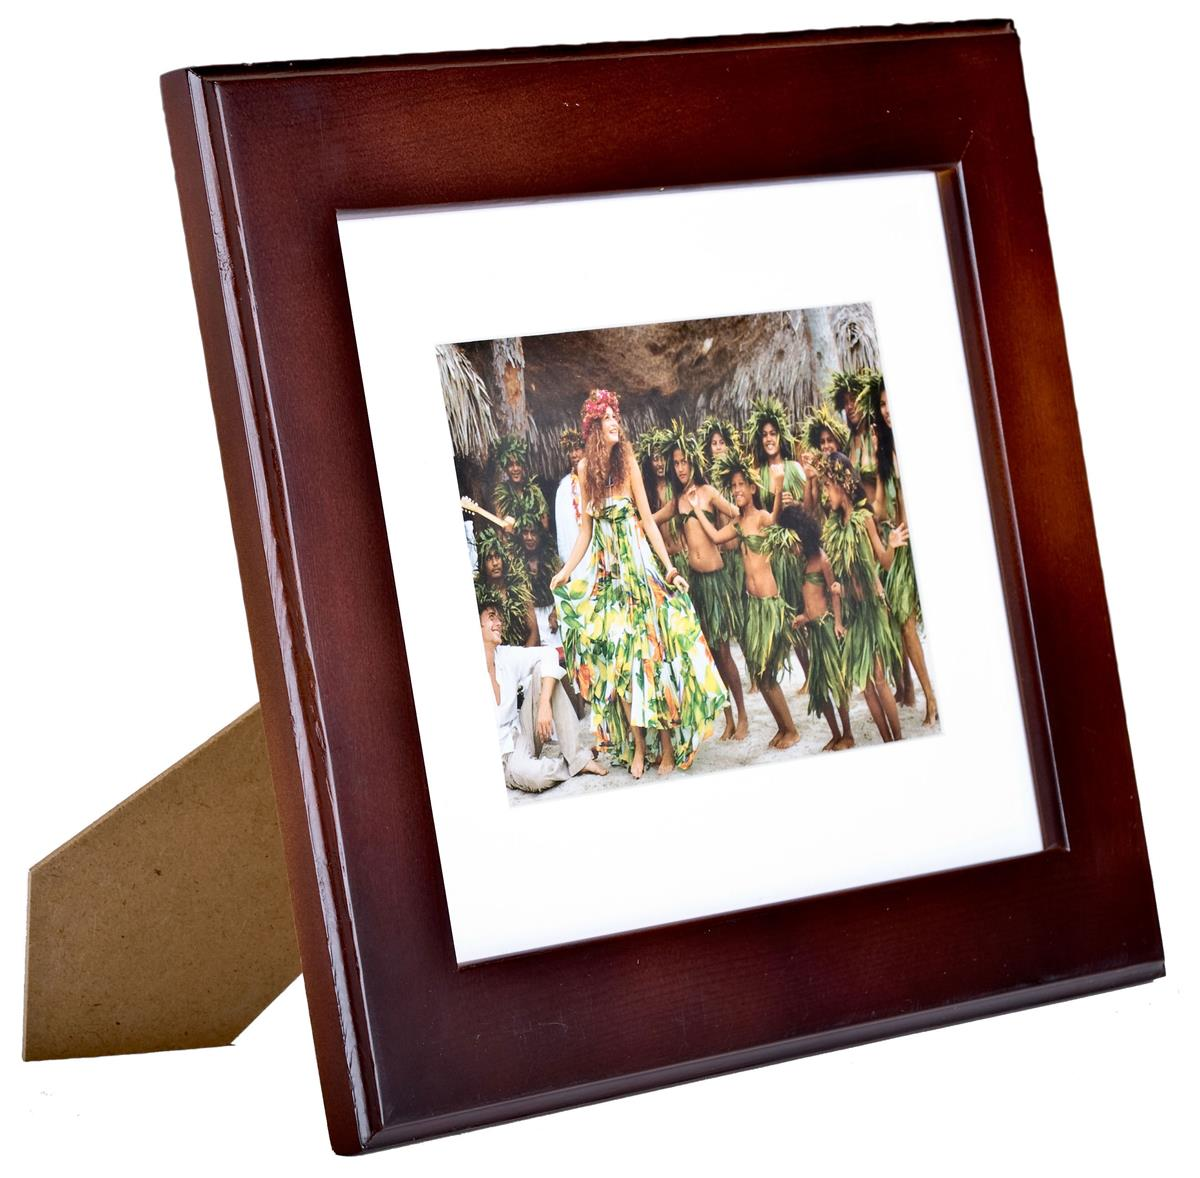 5 Quot X 7 Quot Wood Picture Frames Mahogany Finish